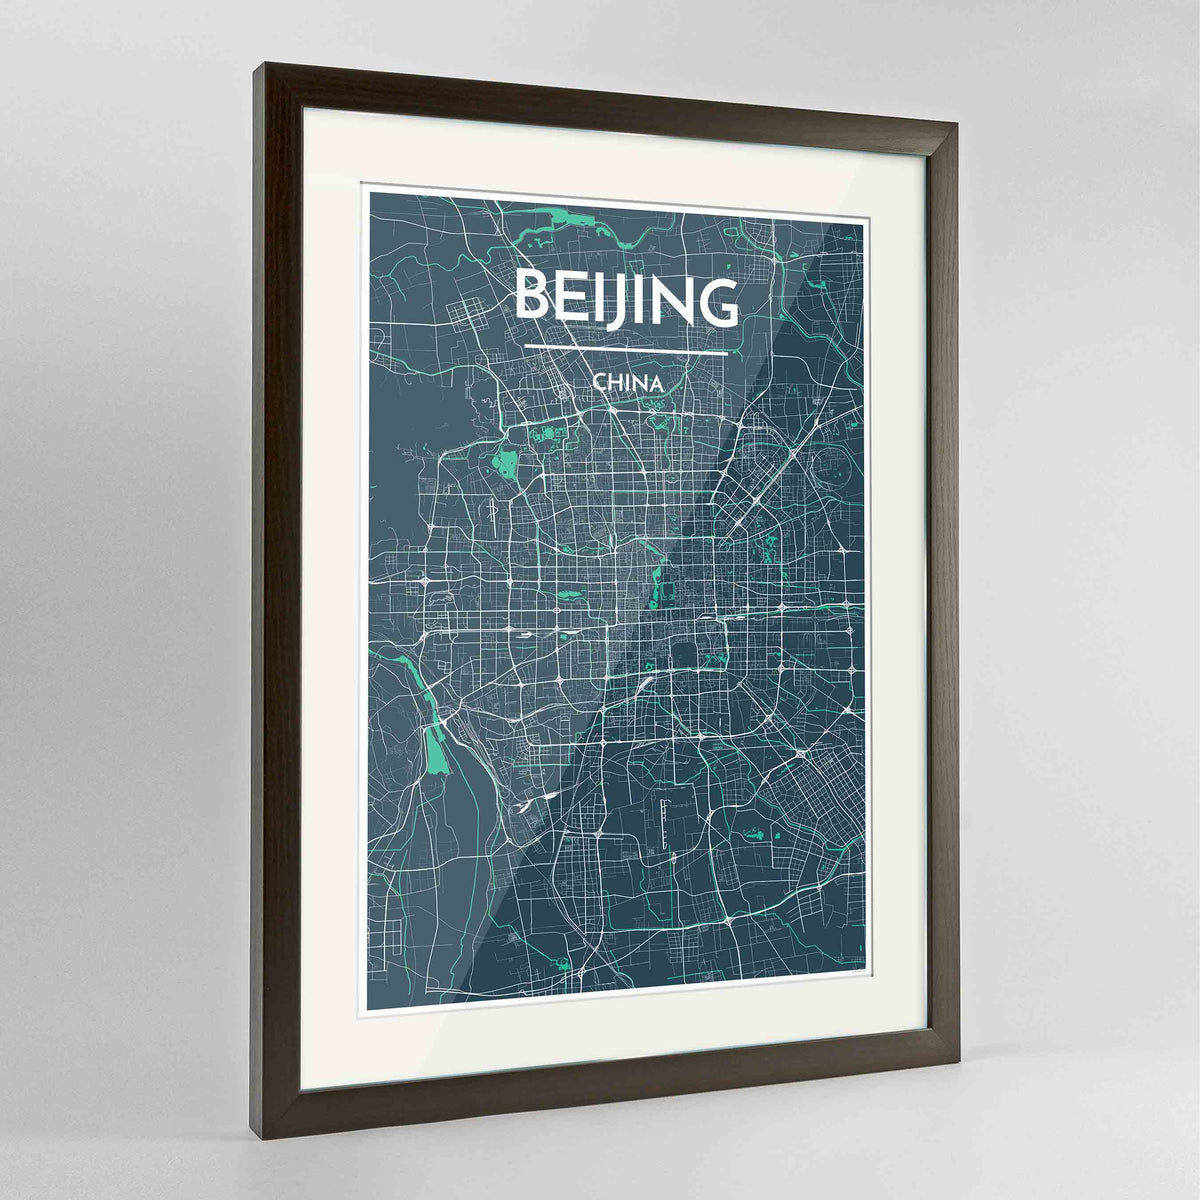 "Framed Beijing Map Art Print 24x36"" Contemporary Walnut frame Point Two Design Group"